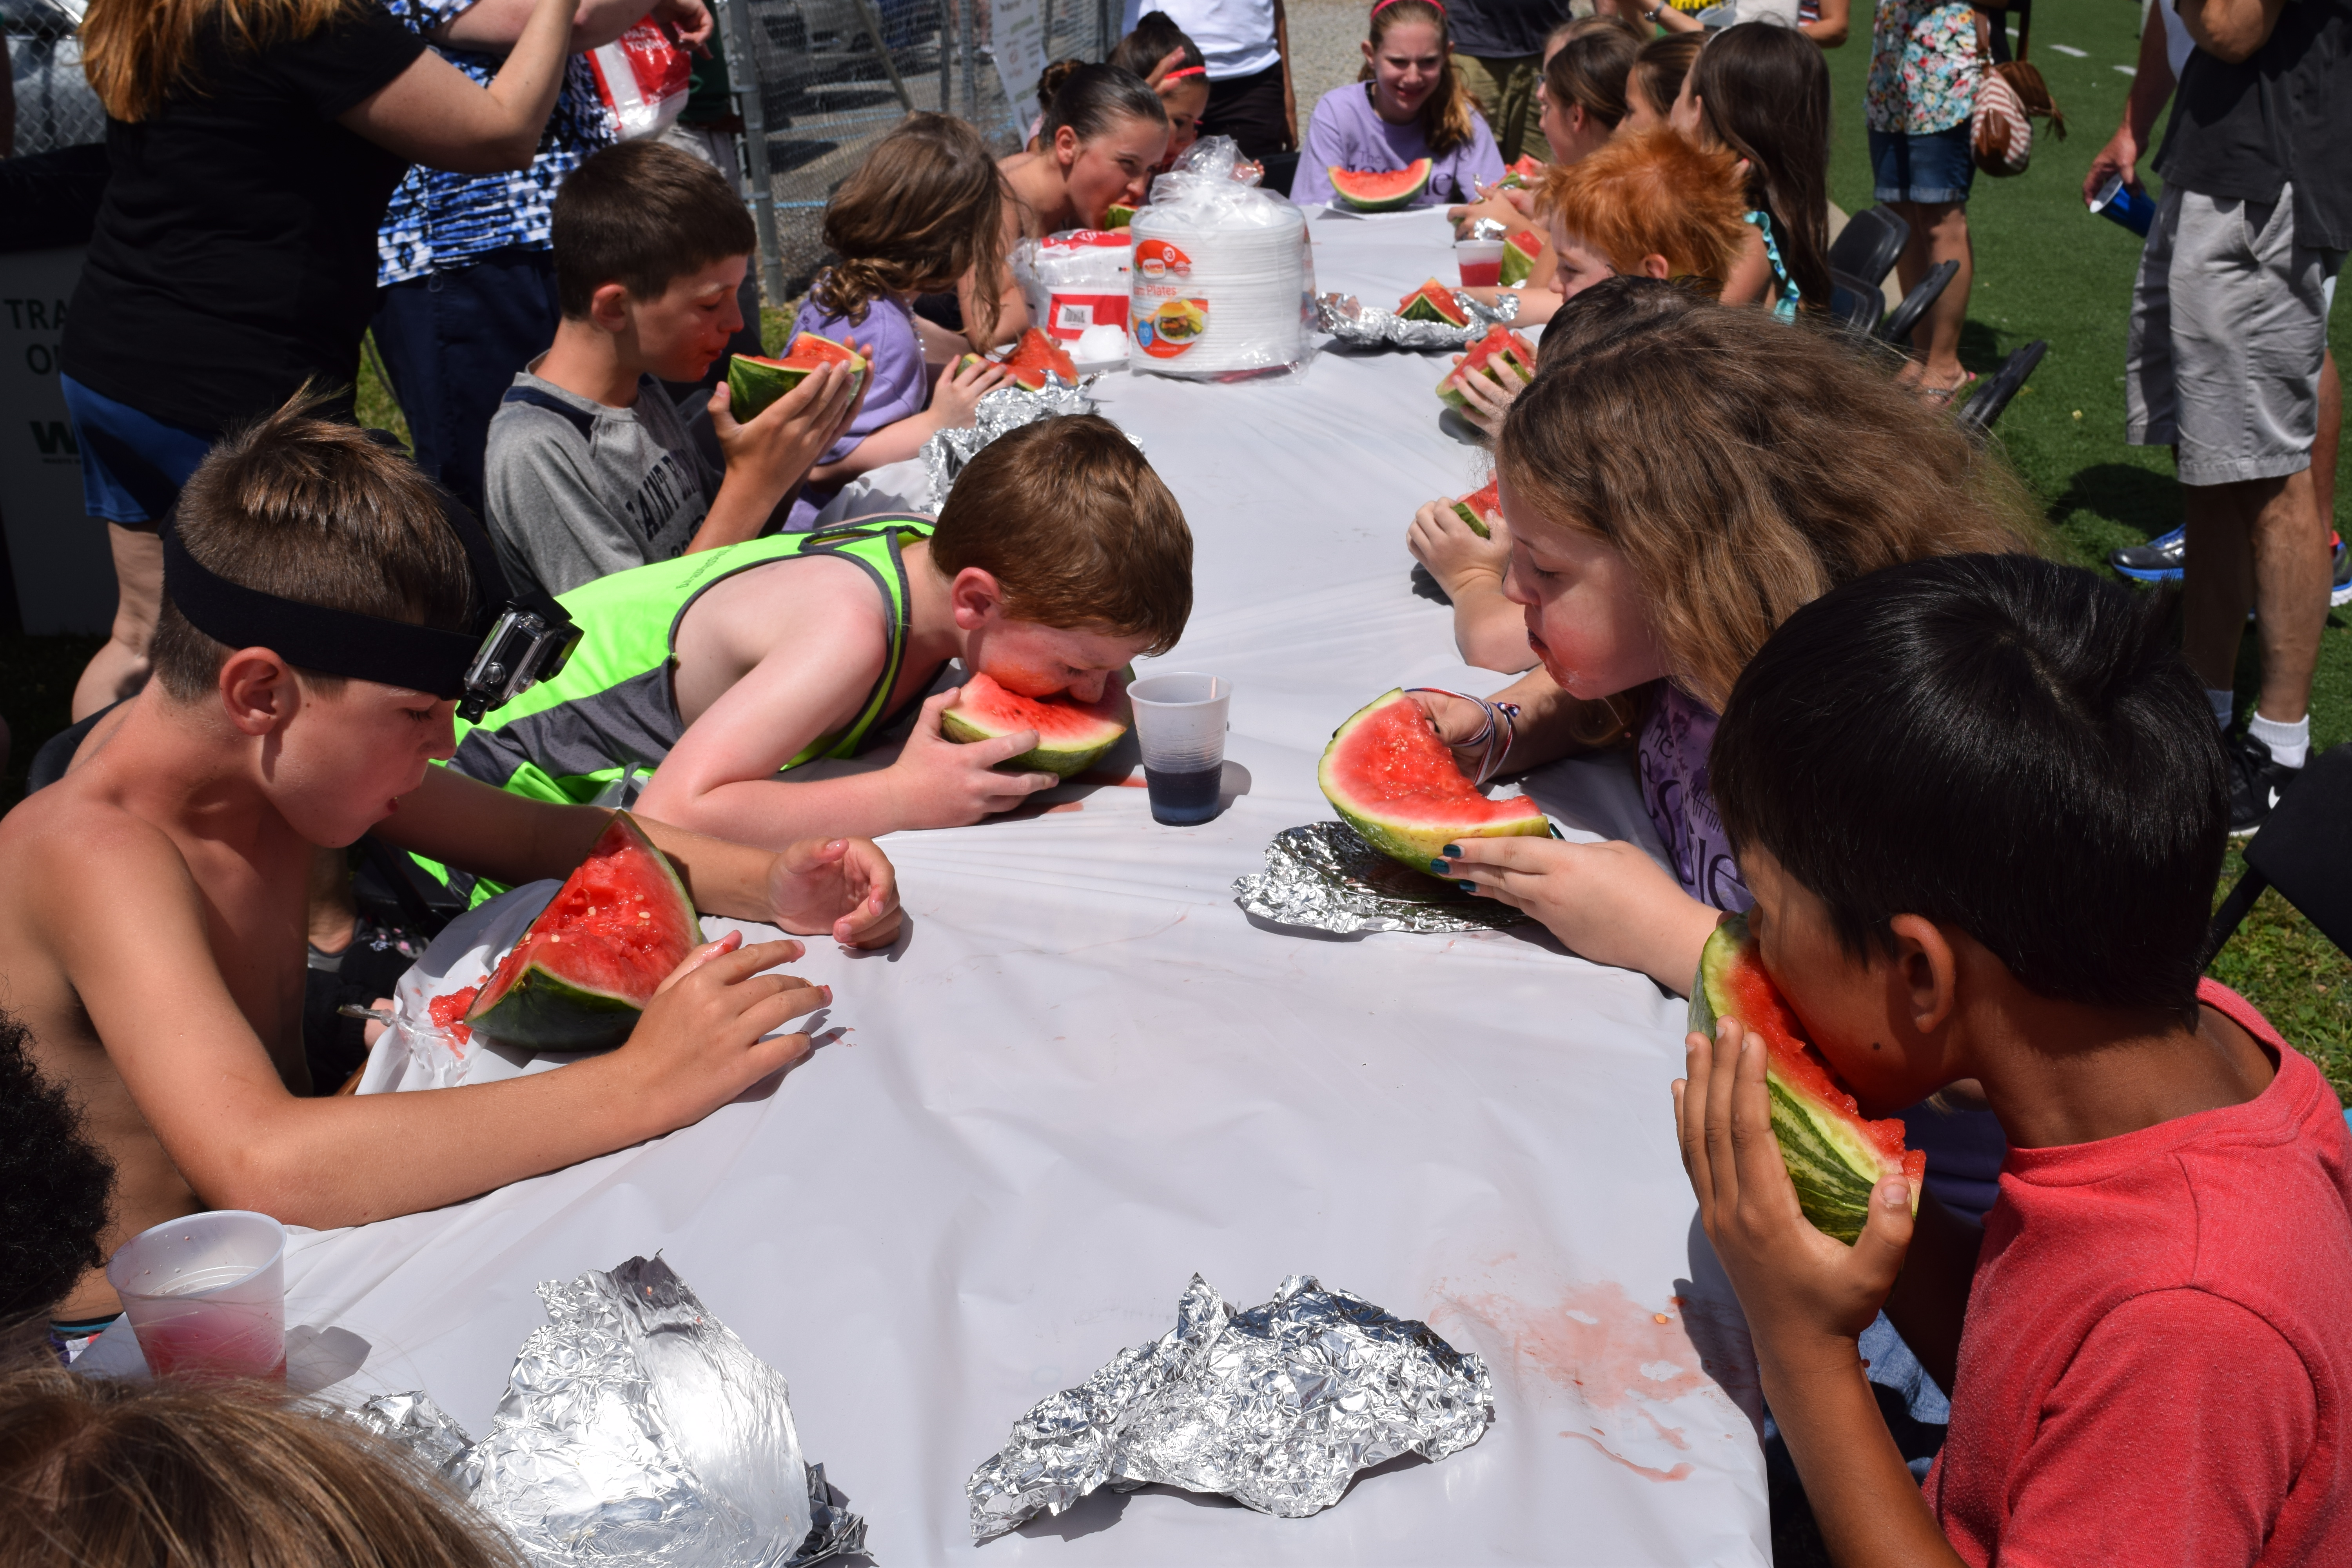 Digging into the watermelon at the 2016 Jessie Games